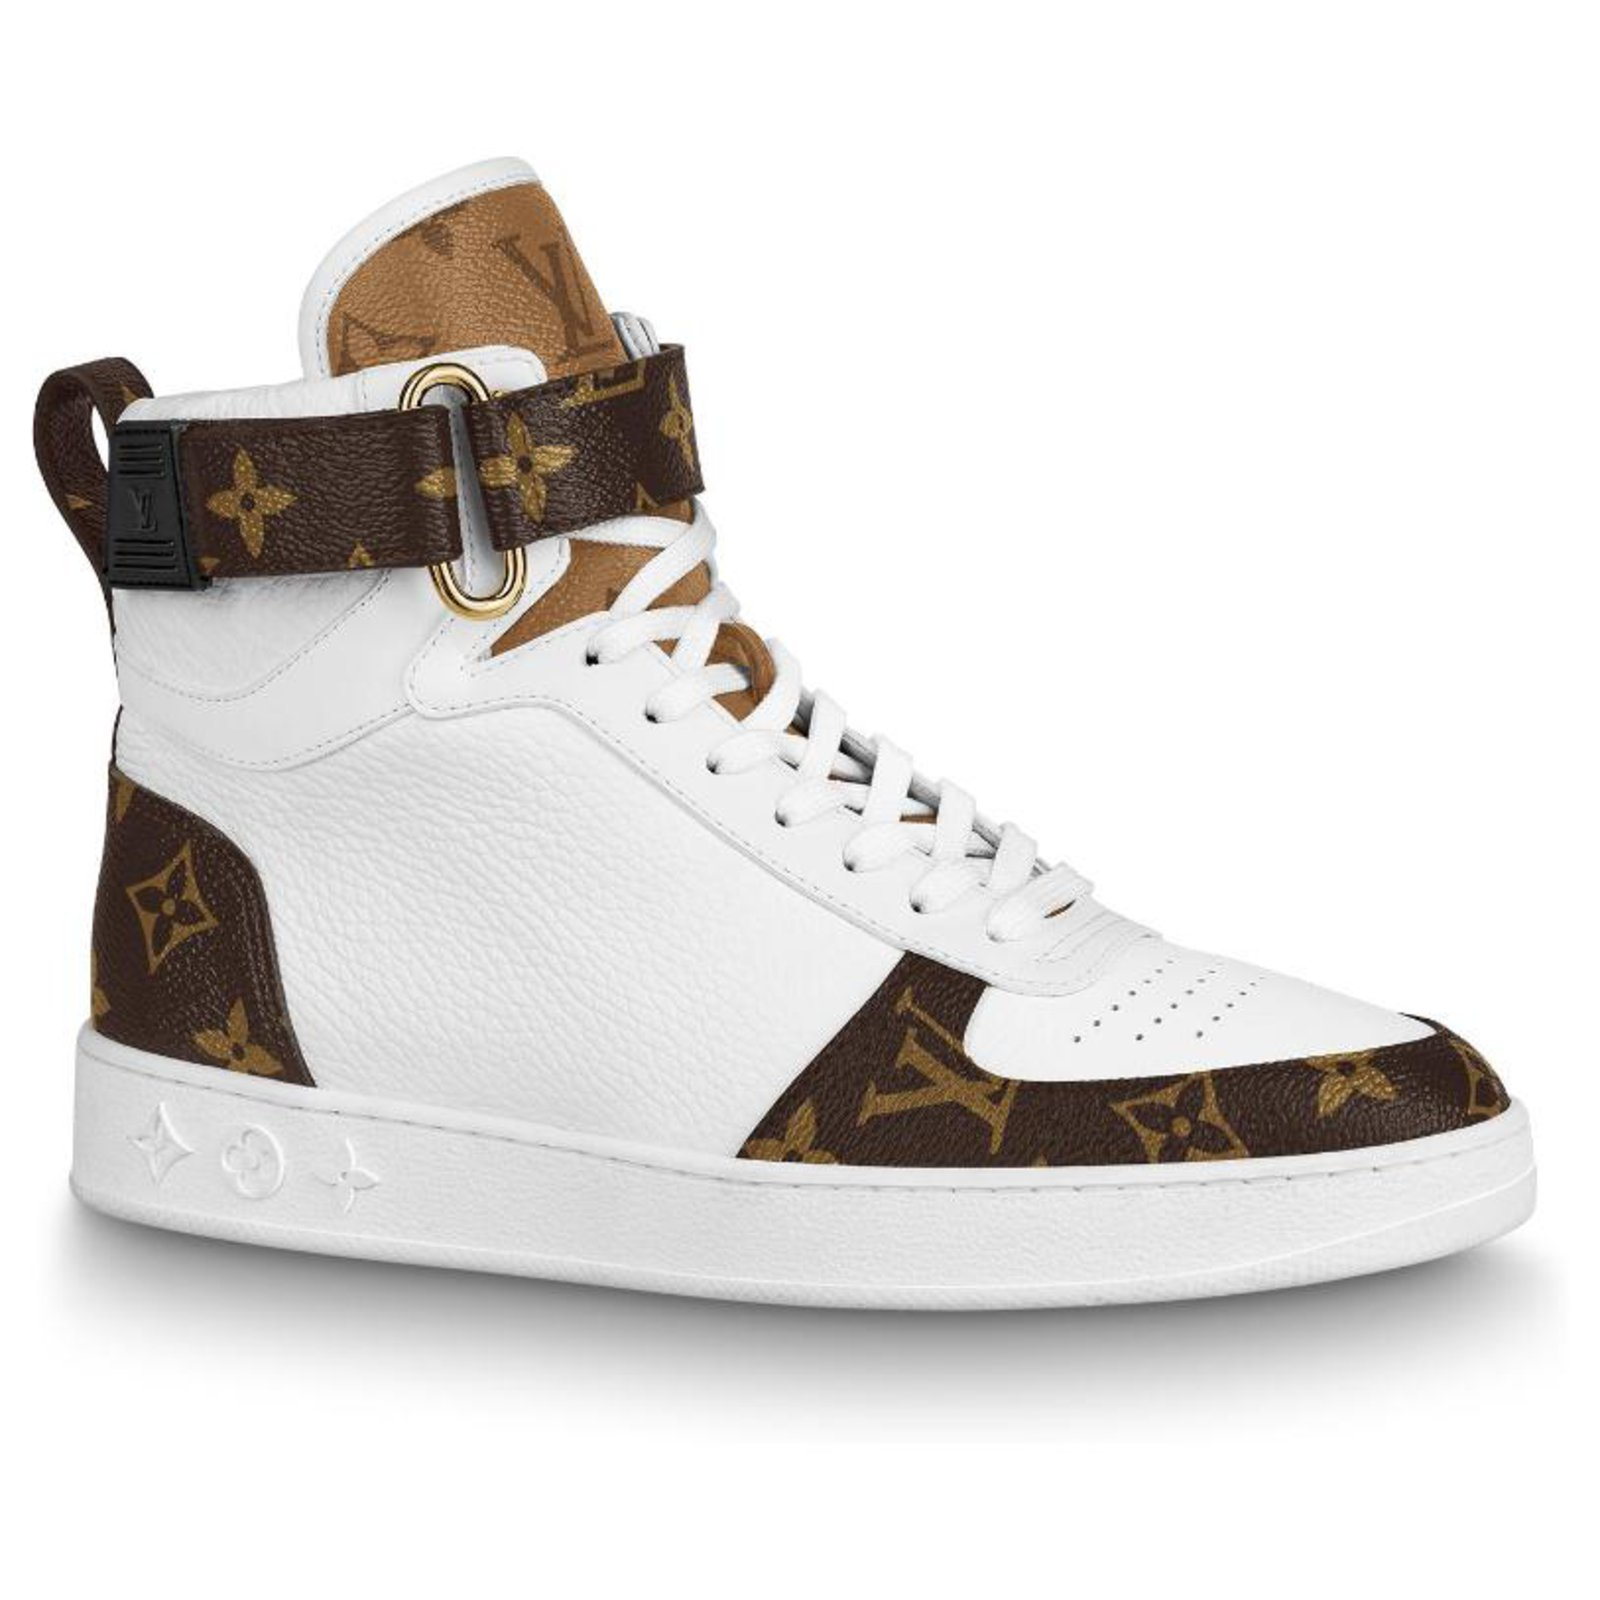 Louis Vuitton LV boombox trainer boots